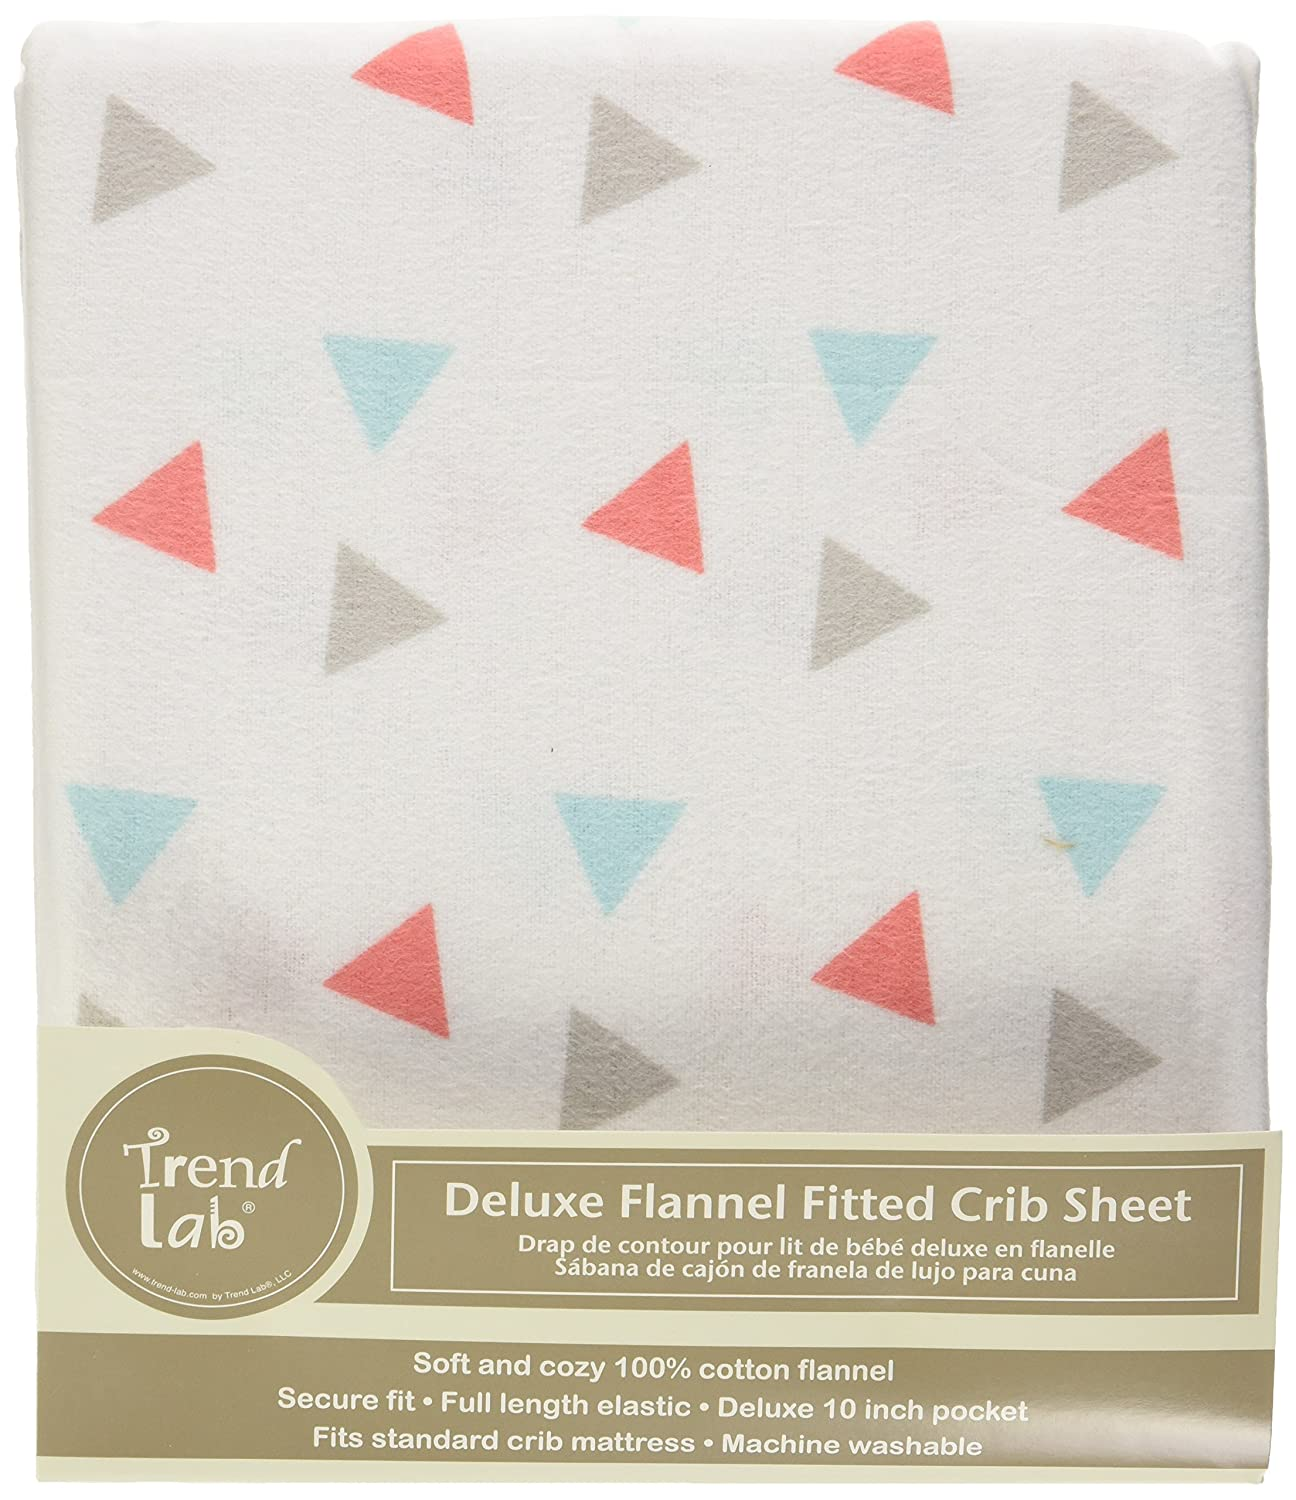 Amazon.com : Trend Lab Coral Triangles Deluxe Flannel Fitted Crib Sheet : Baby